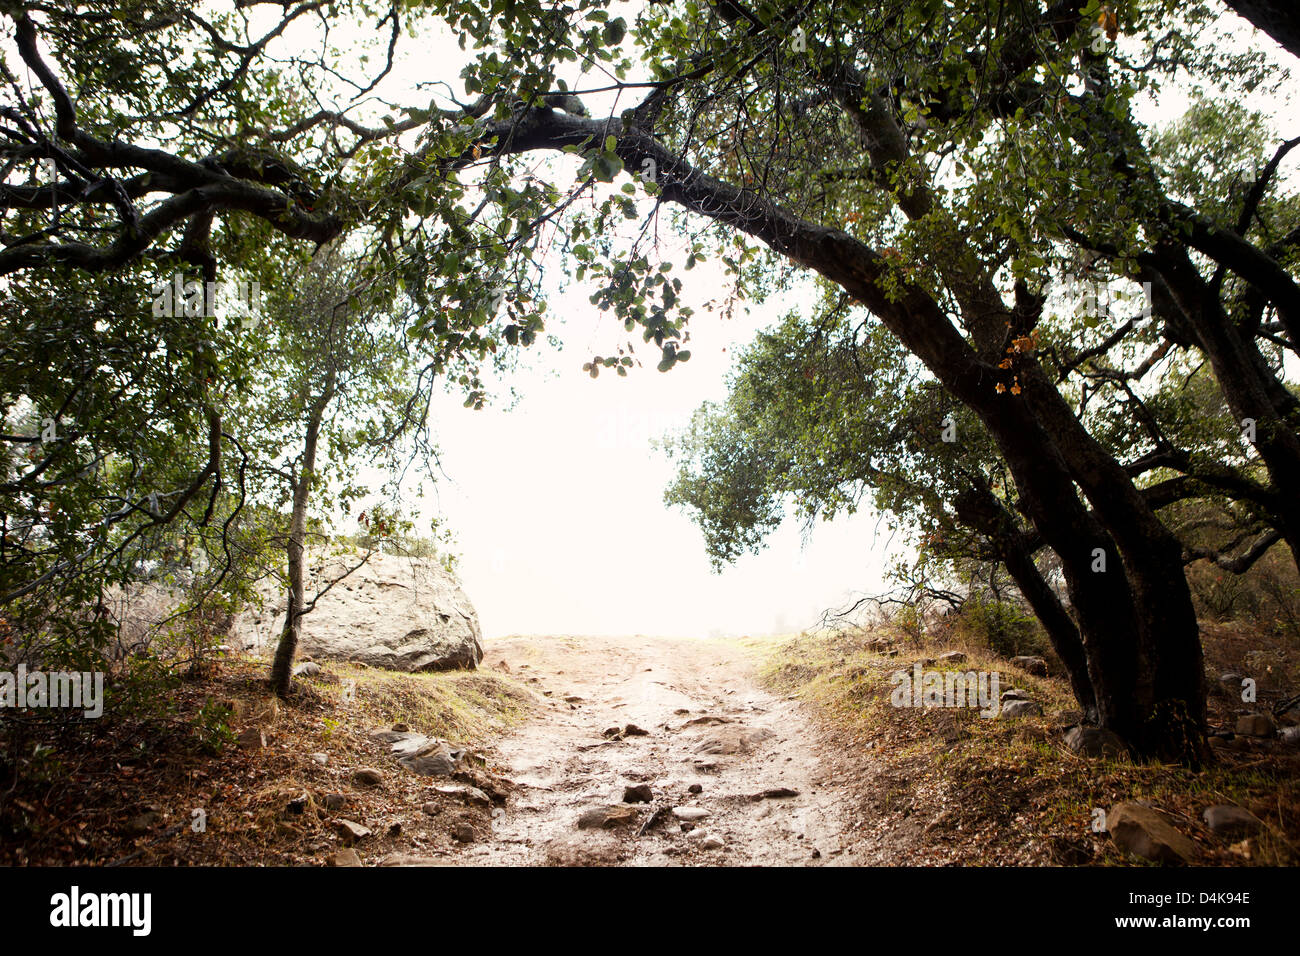 Dirt road leading out of forest - Stock Image